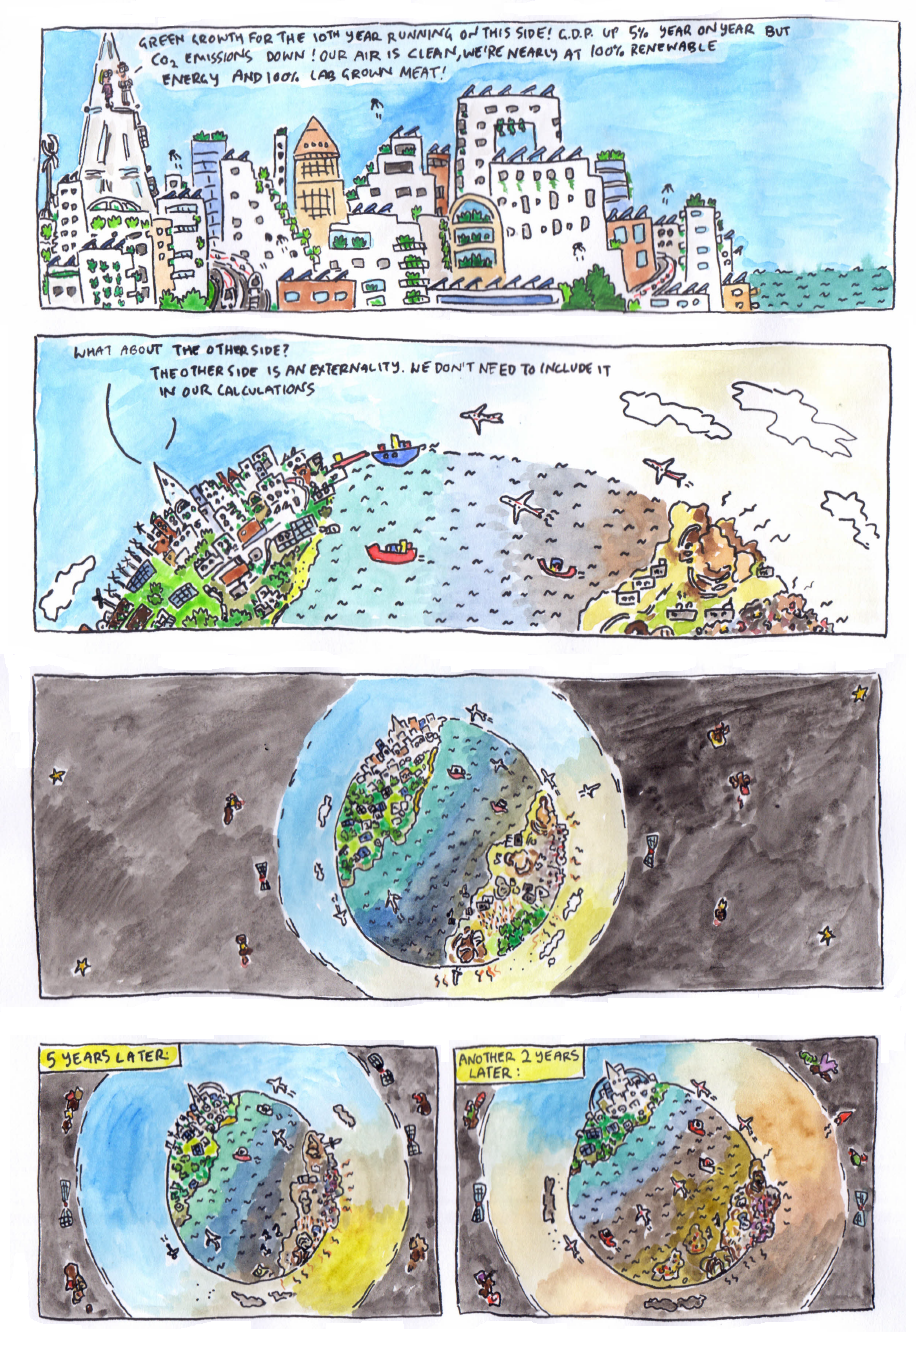 Degrowth part 1